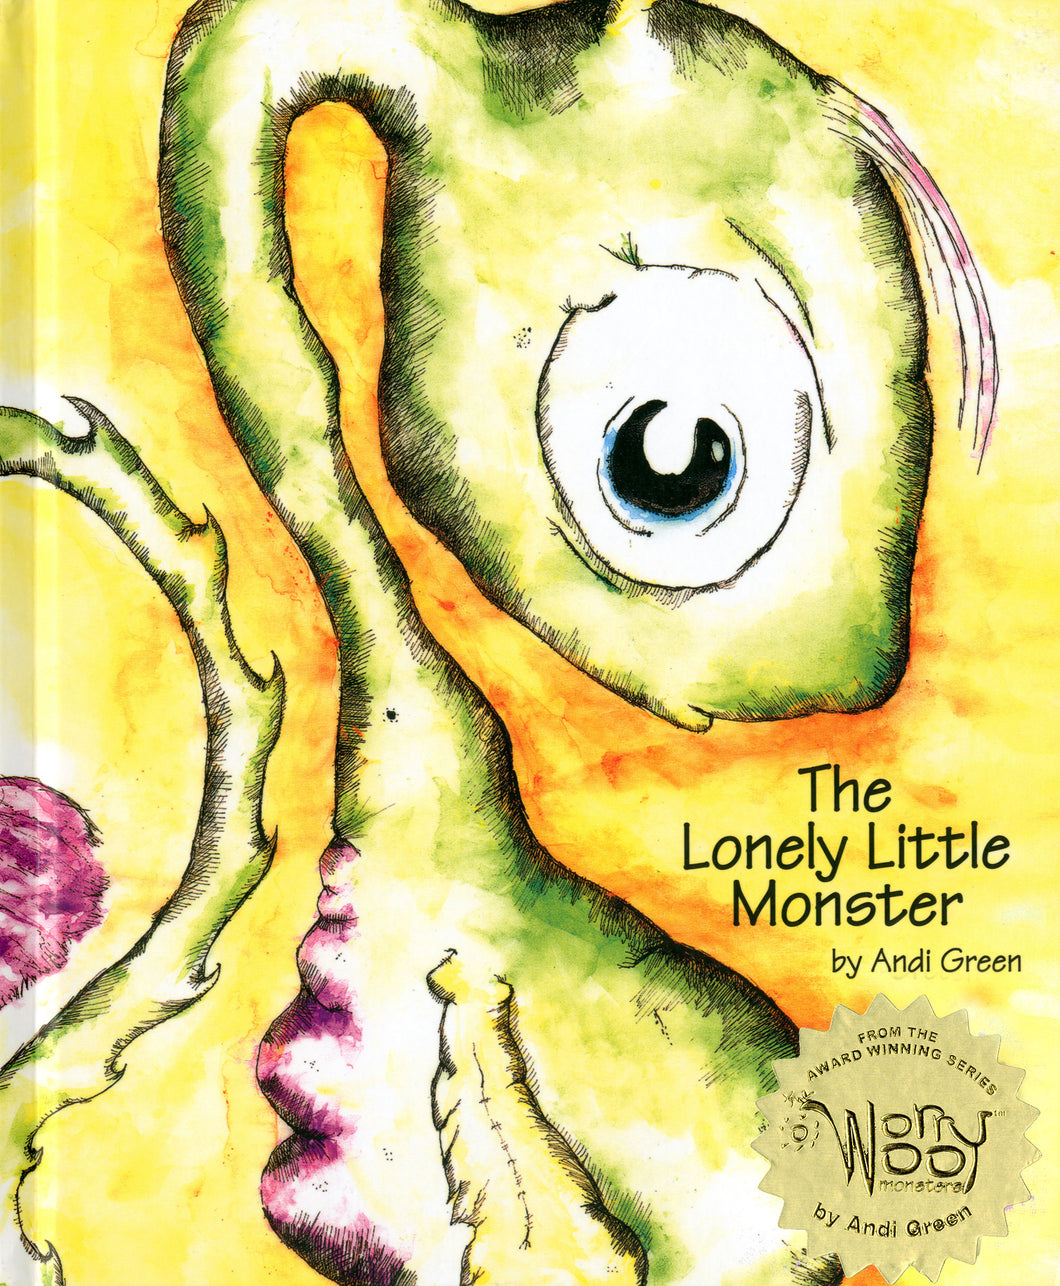 Nola - The Lonely Little Monster - WorryWoo Book